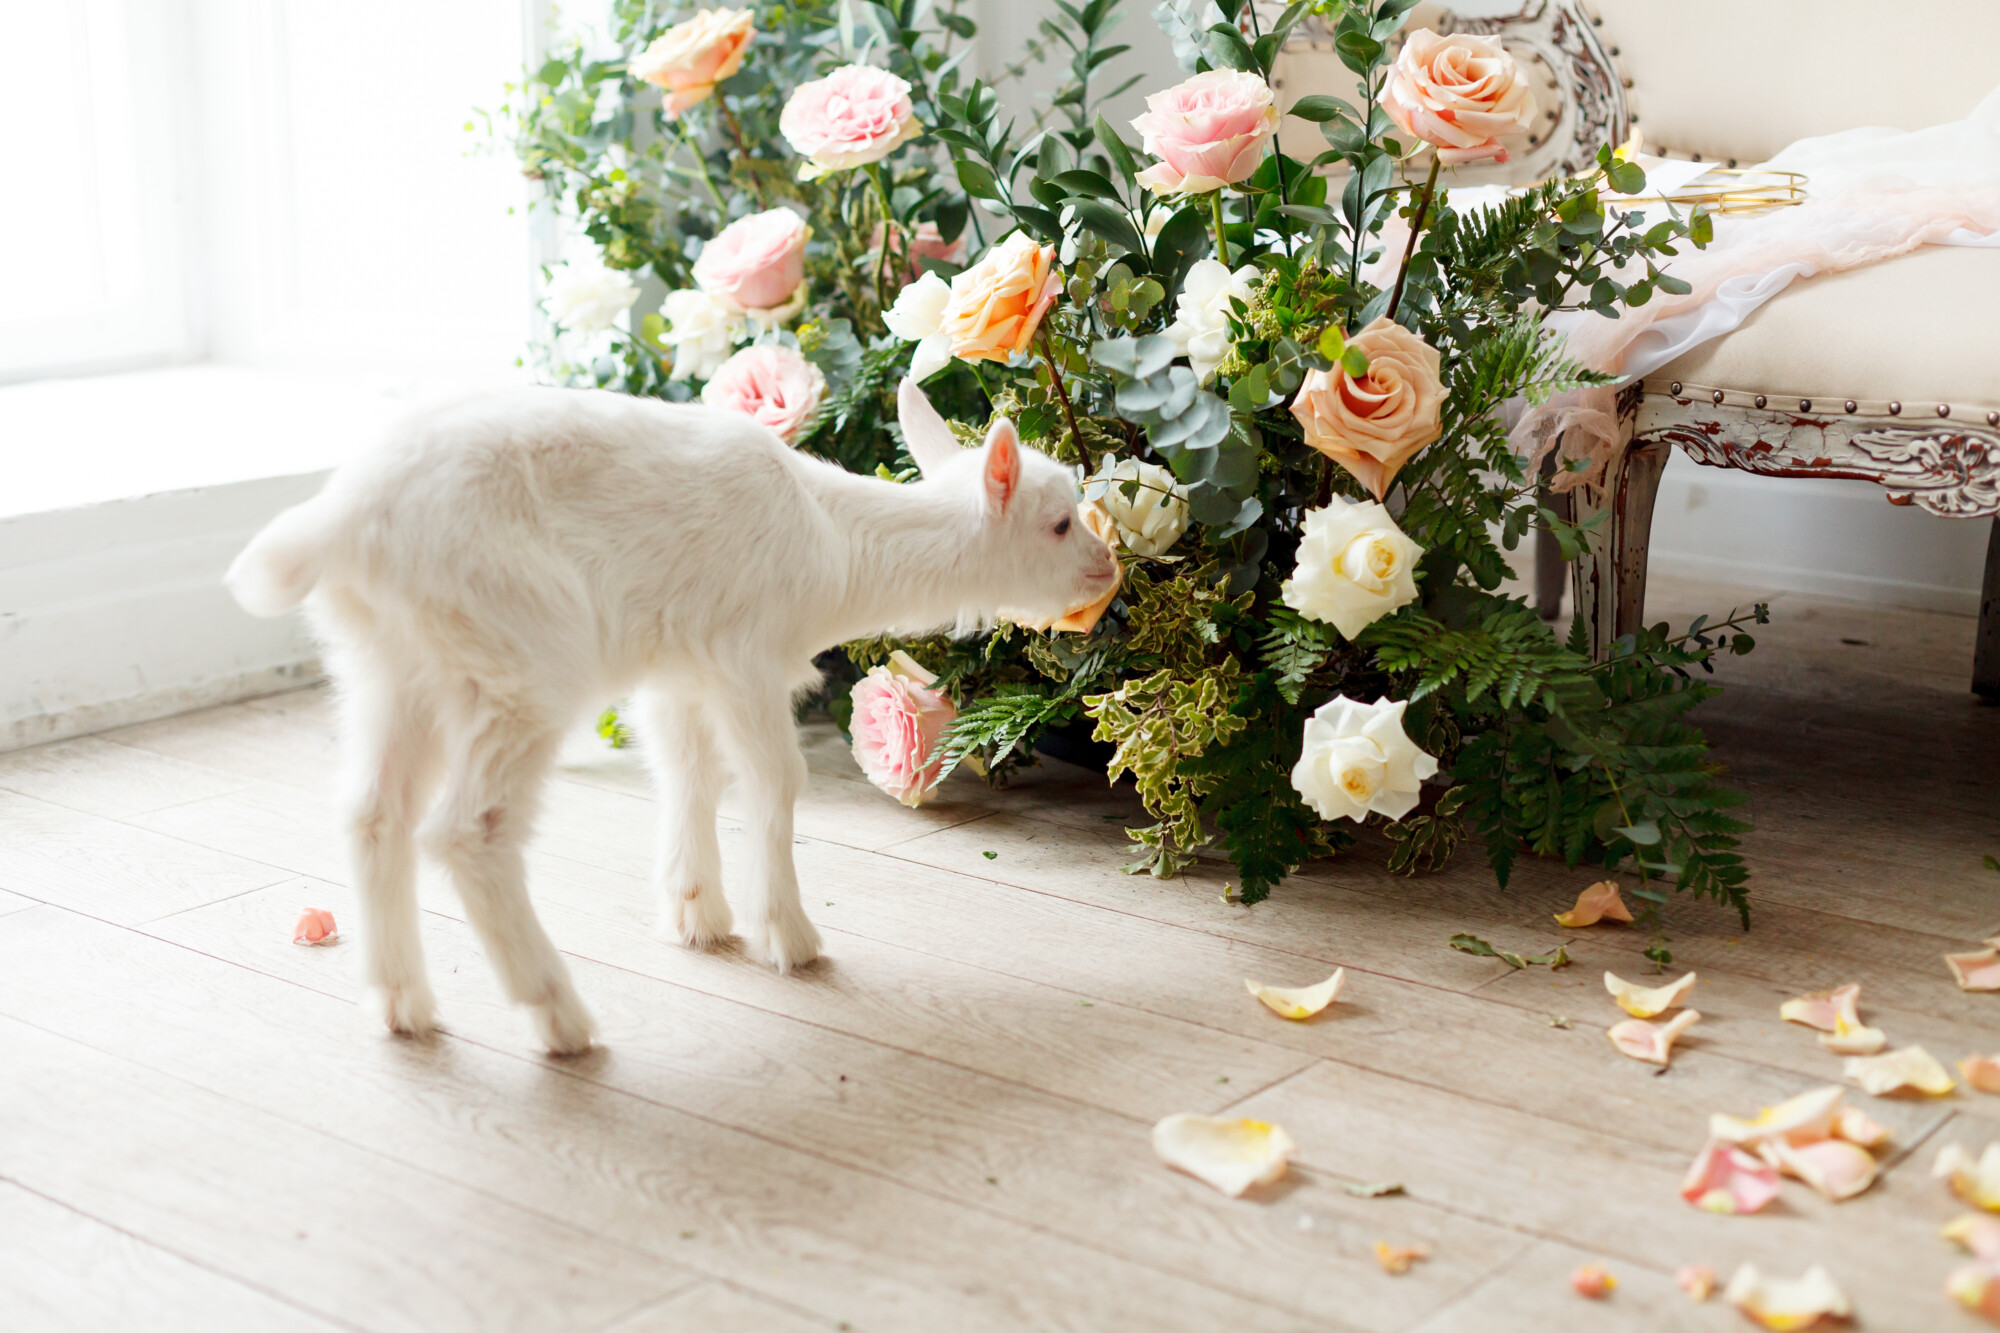 white baby goat sniffing wedding flowers with rose petals on the floor.